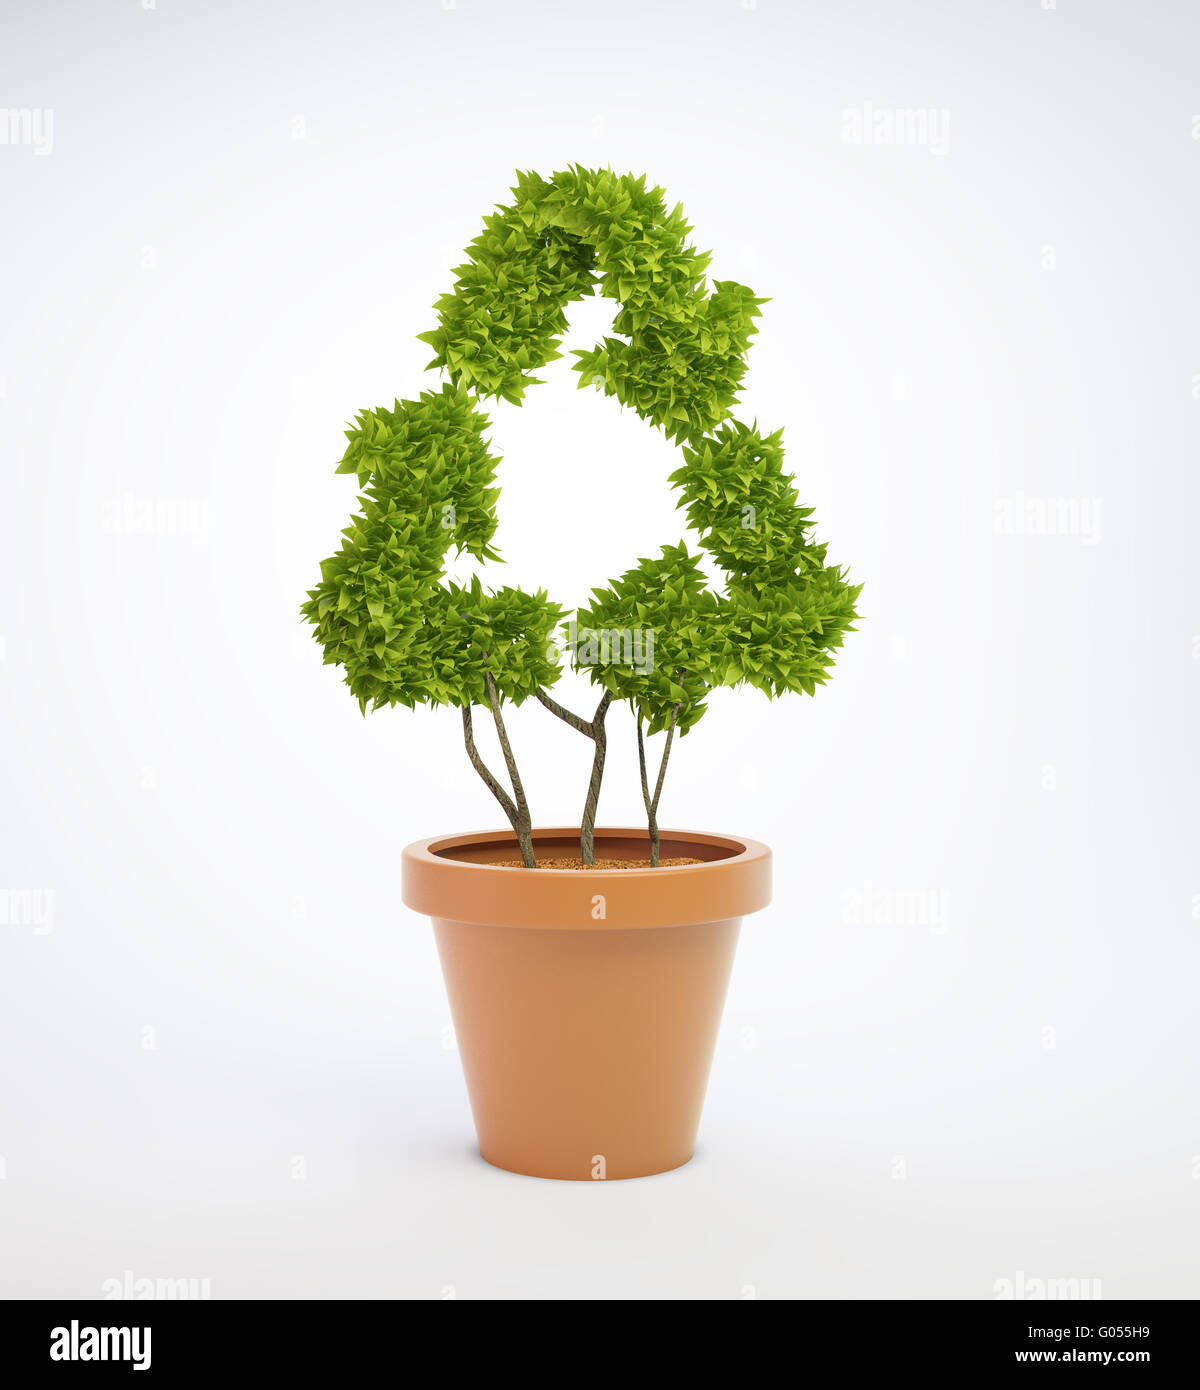 Plante dans un pot en forme de symbole de recyclage Photo Stock